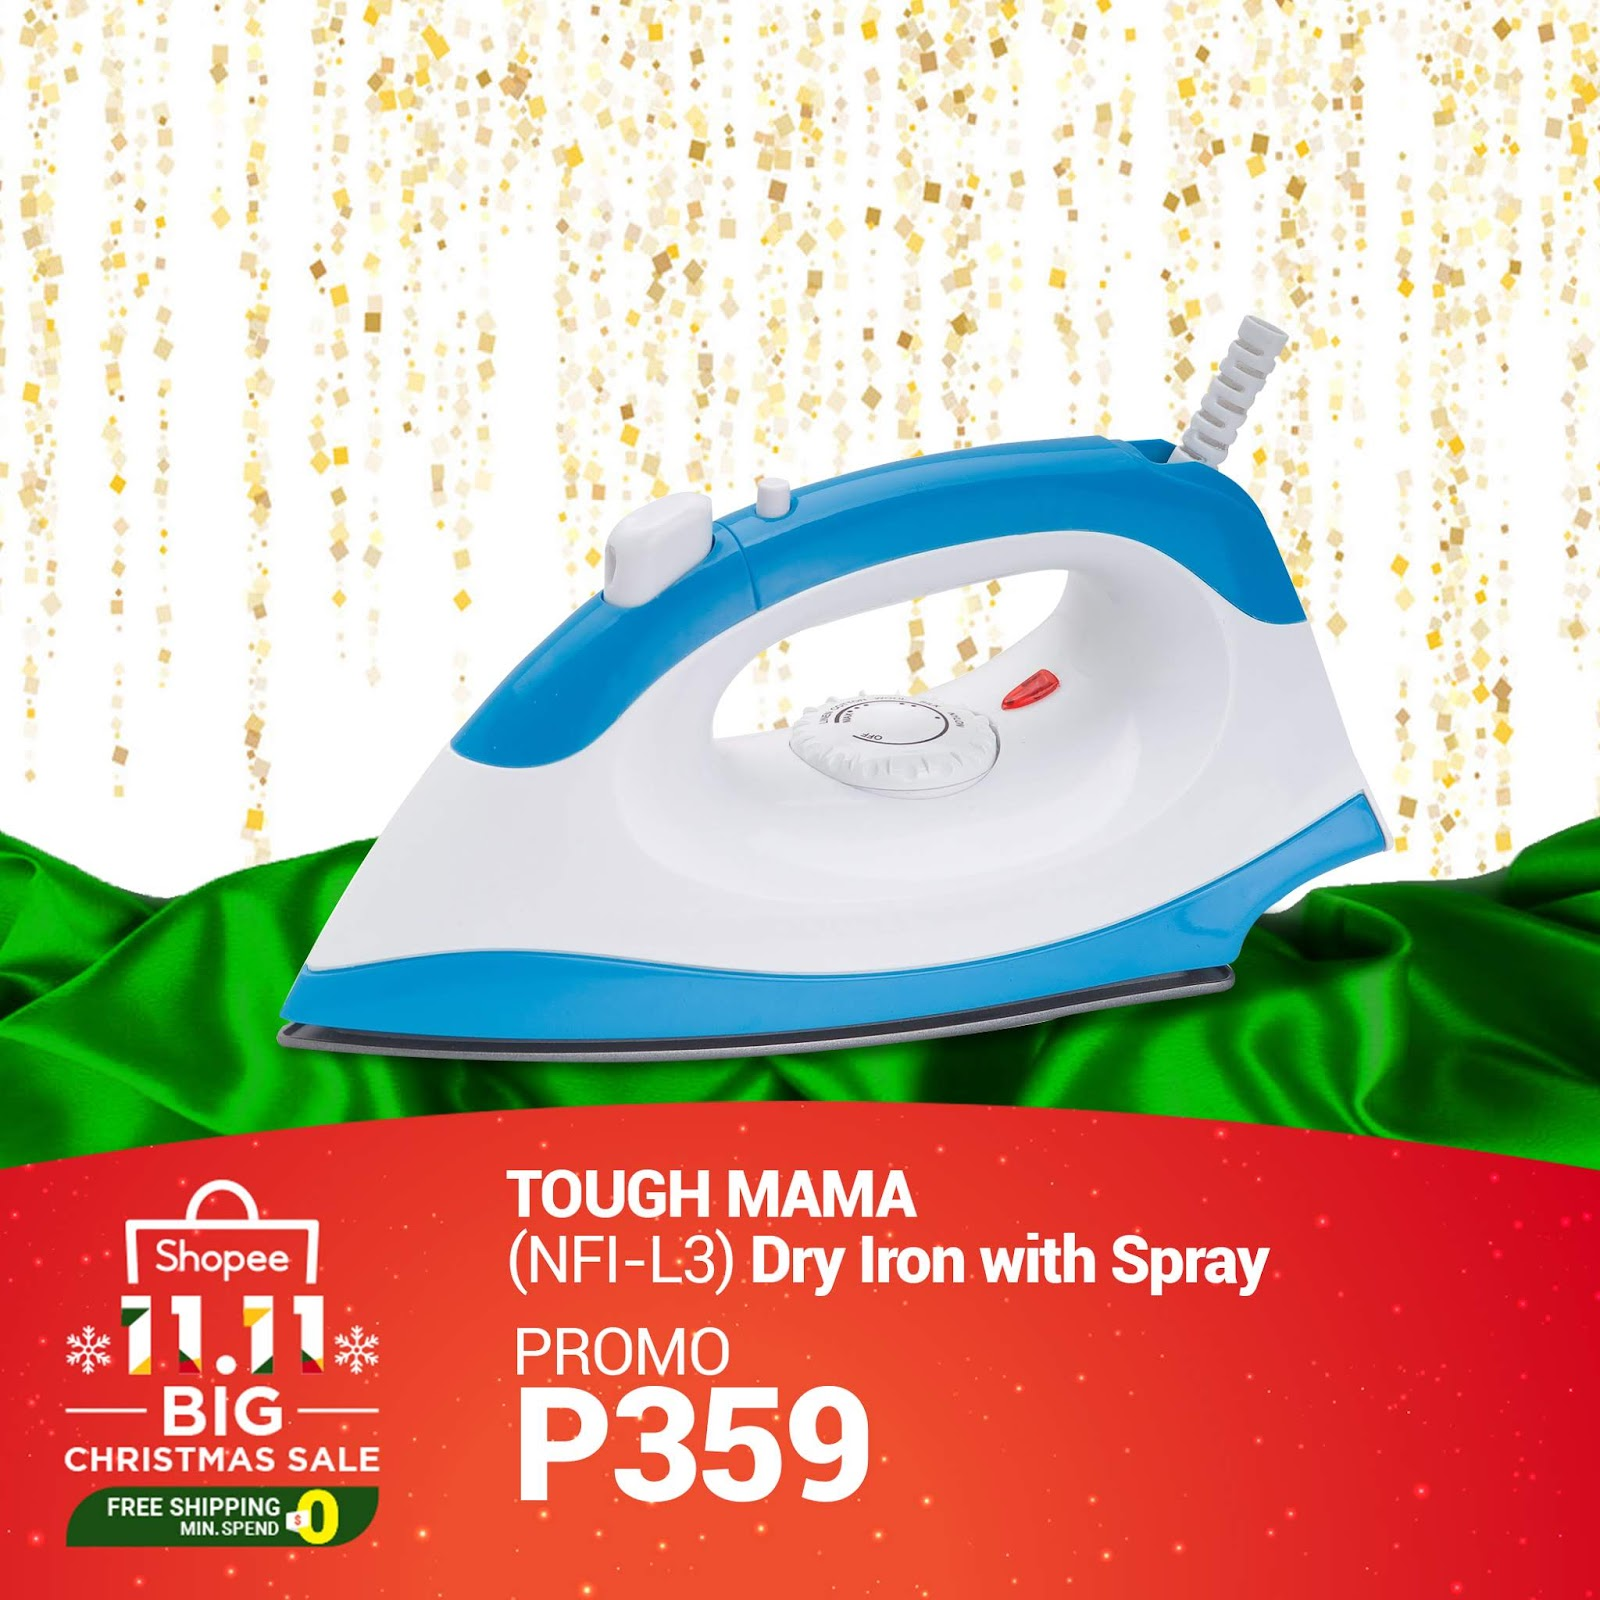 Up to 50% OFF on Robinsons Appliances at Shopee 11.11 Big Christmas Sale